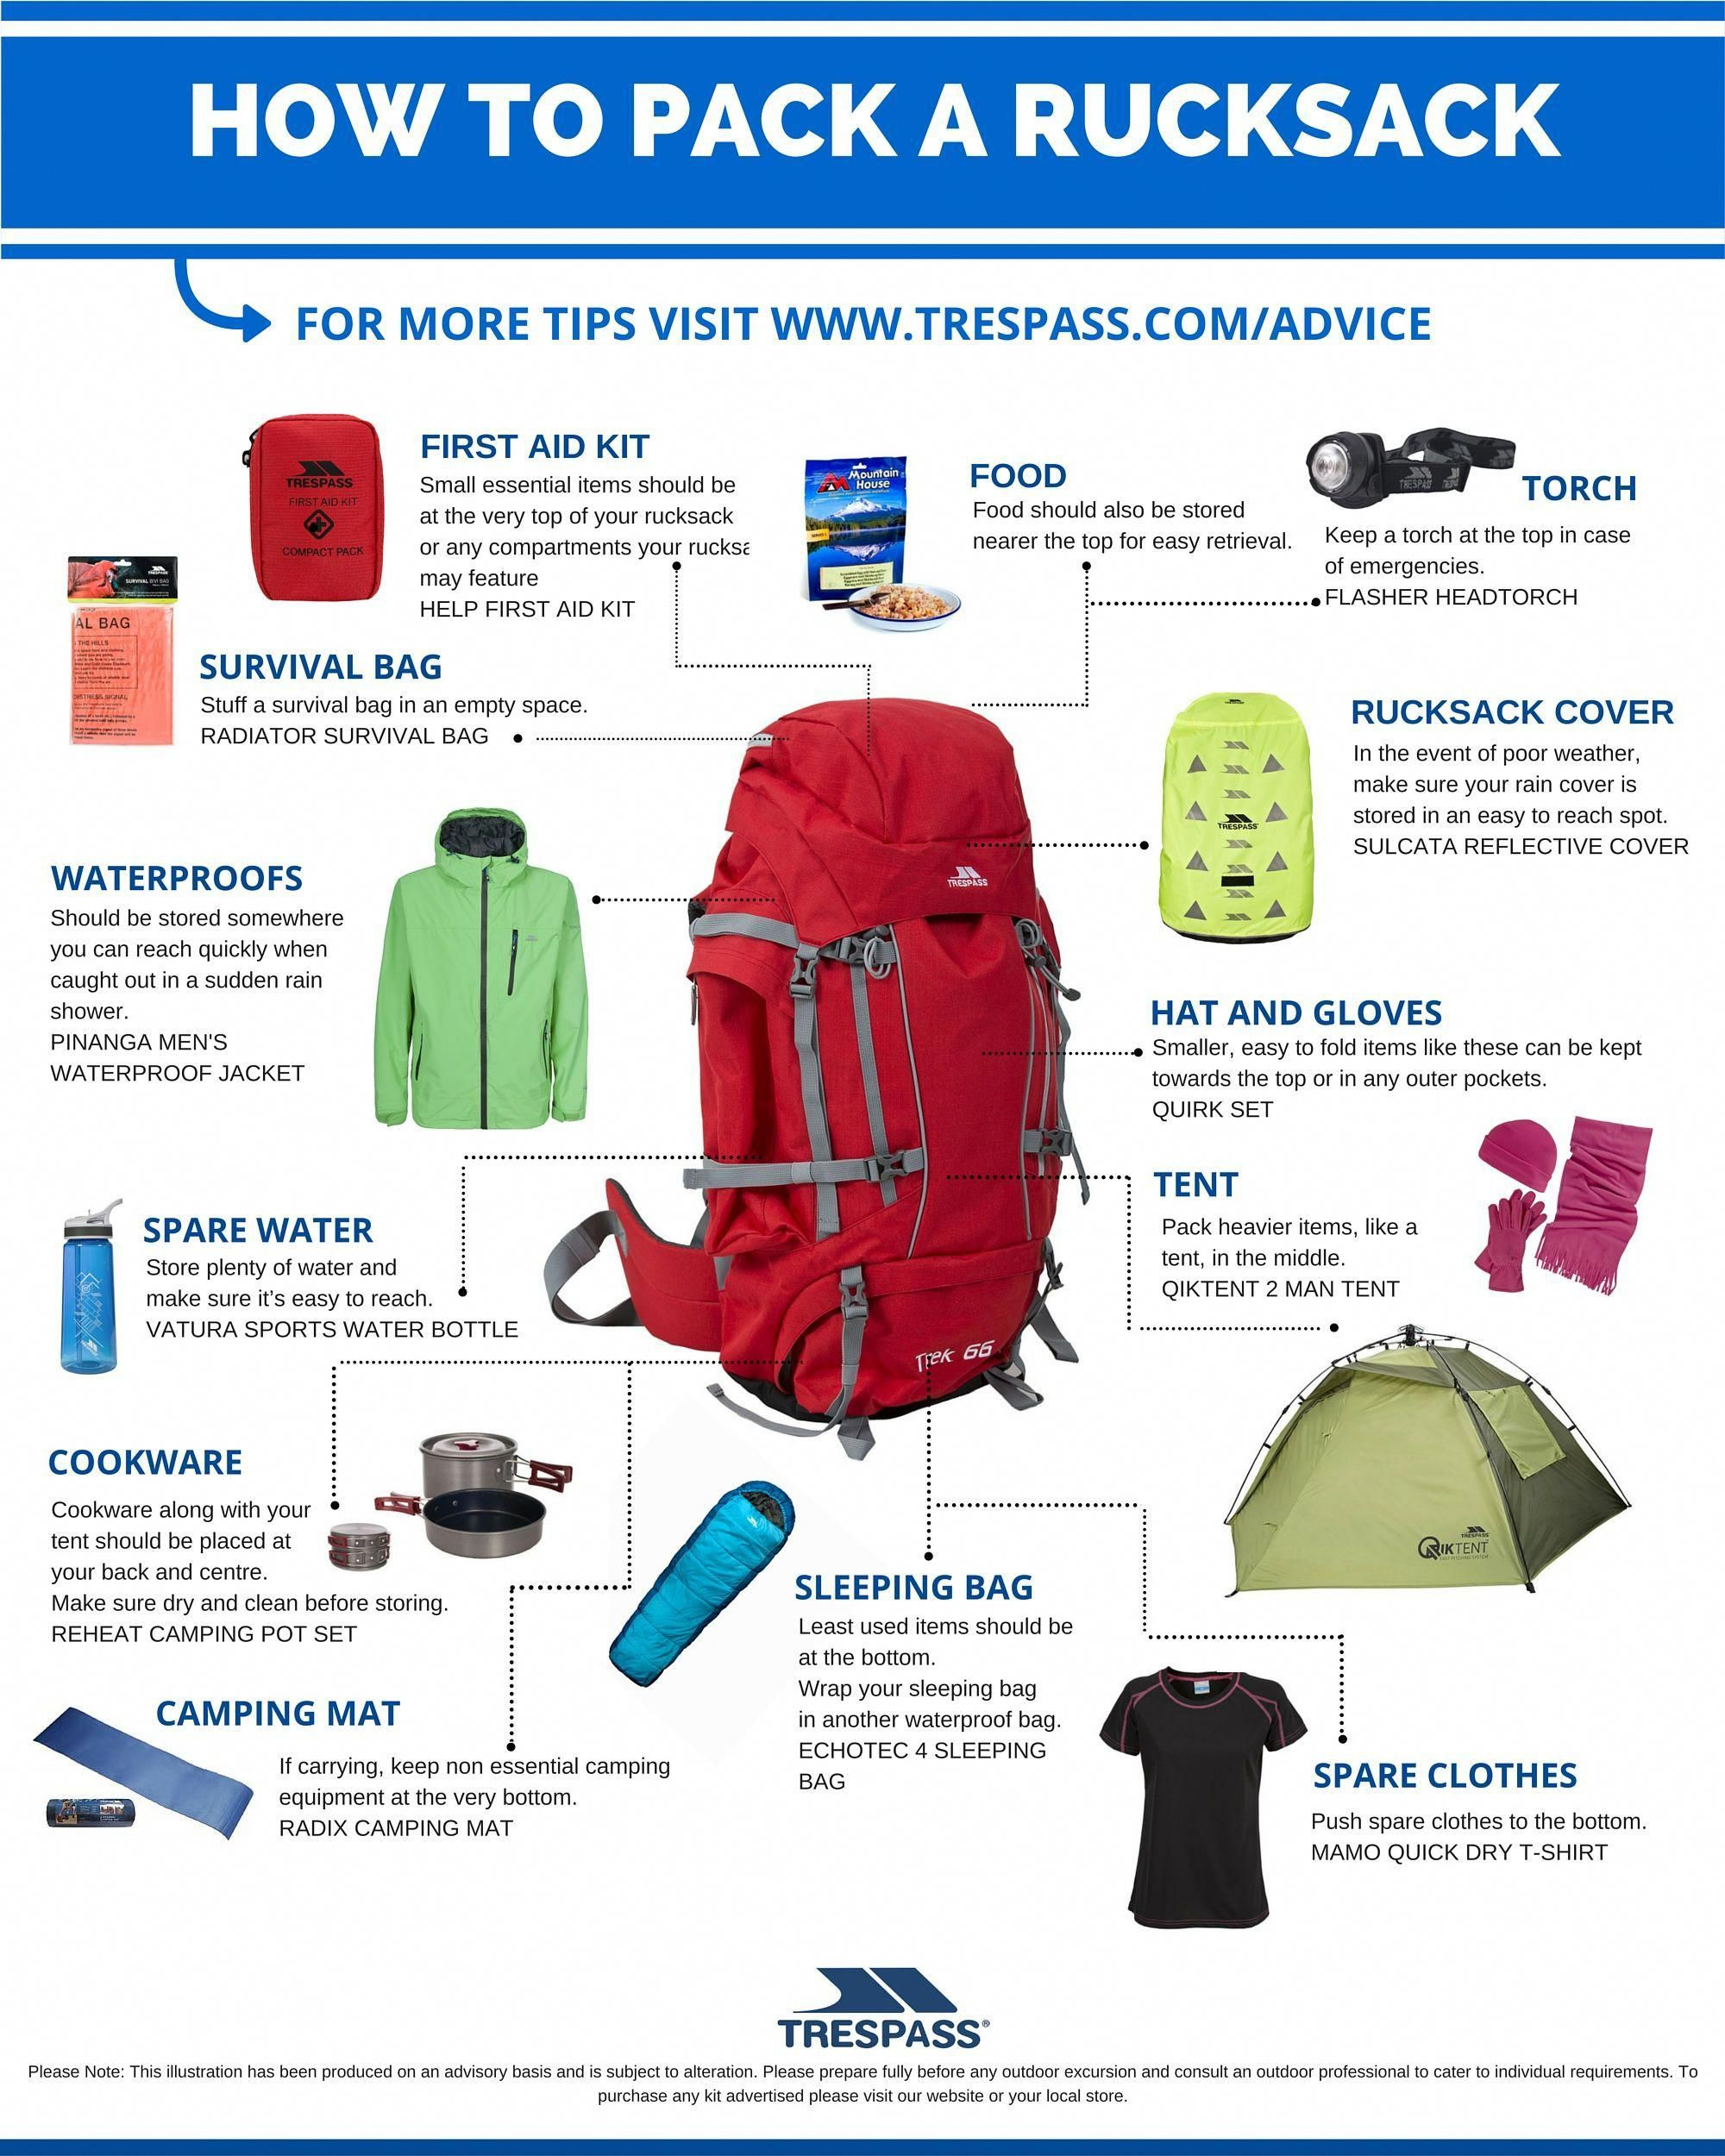 Is this the basic essential camping gear for your campsite